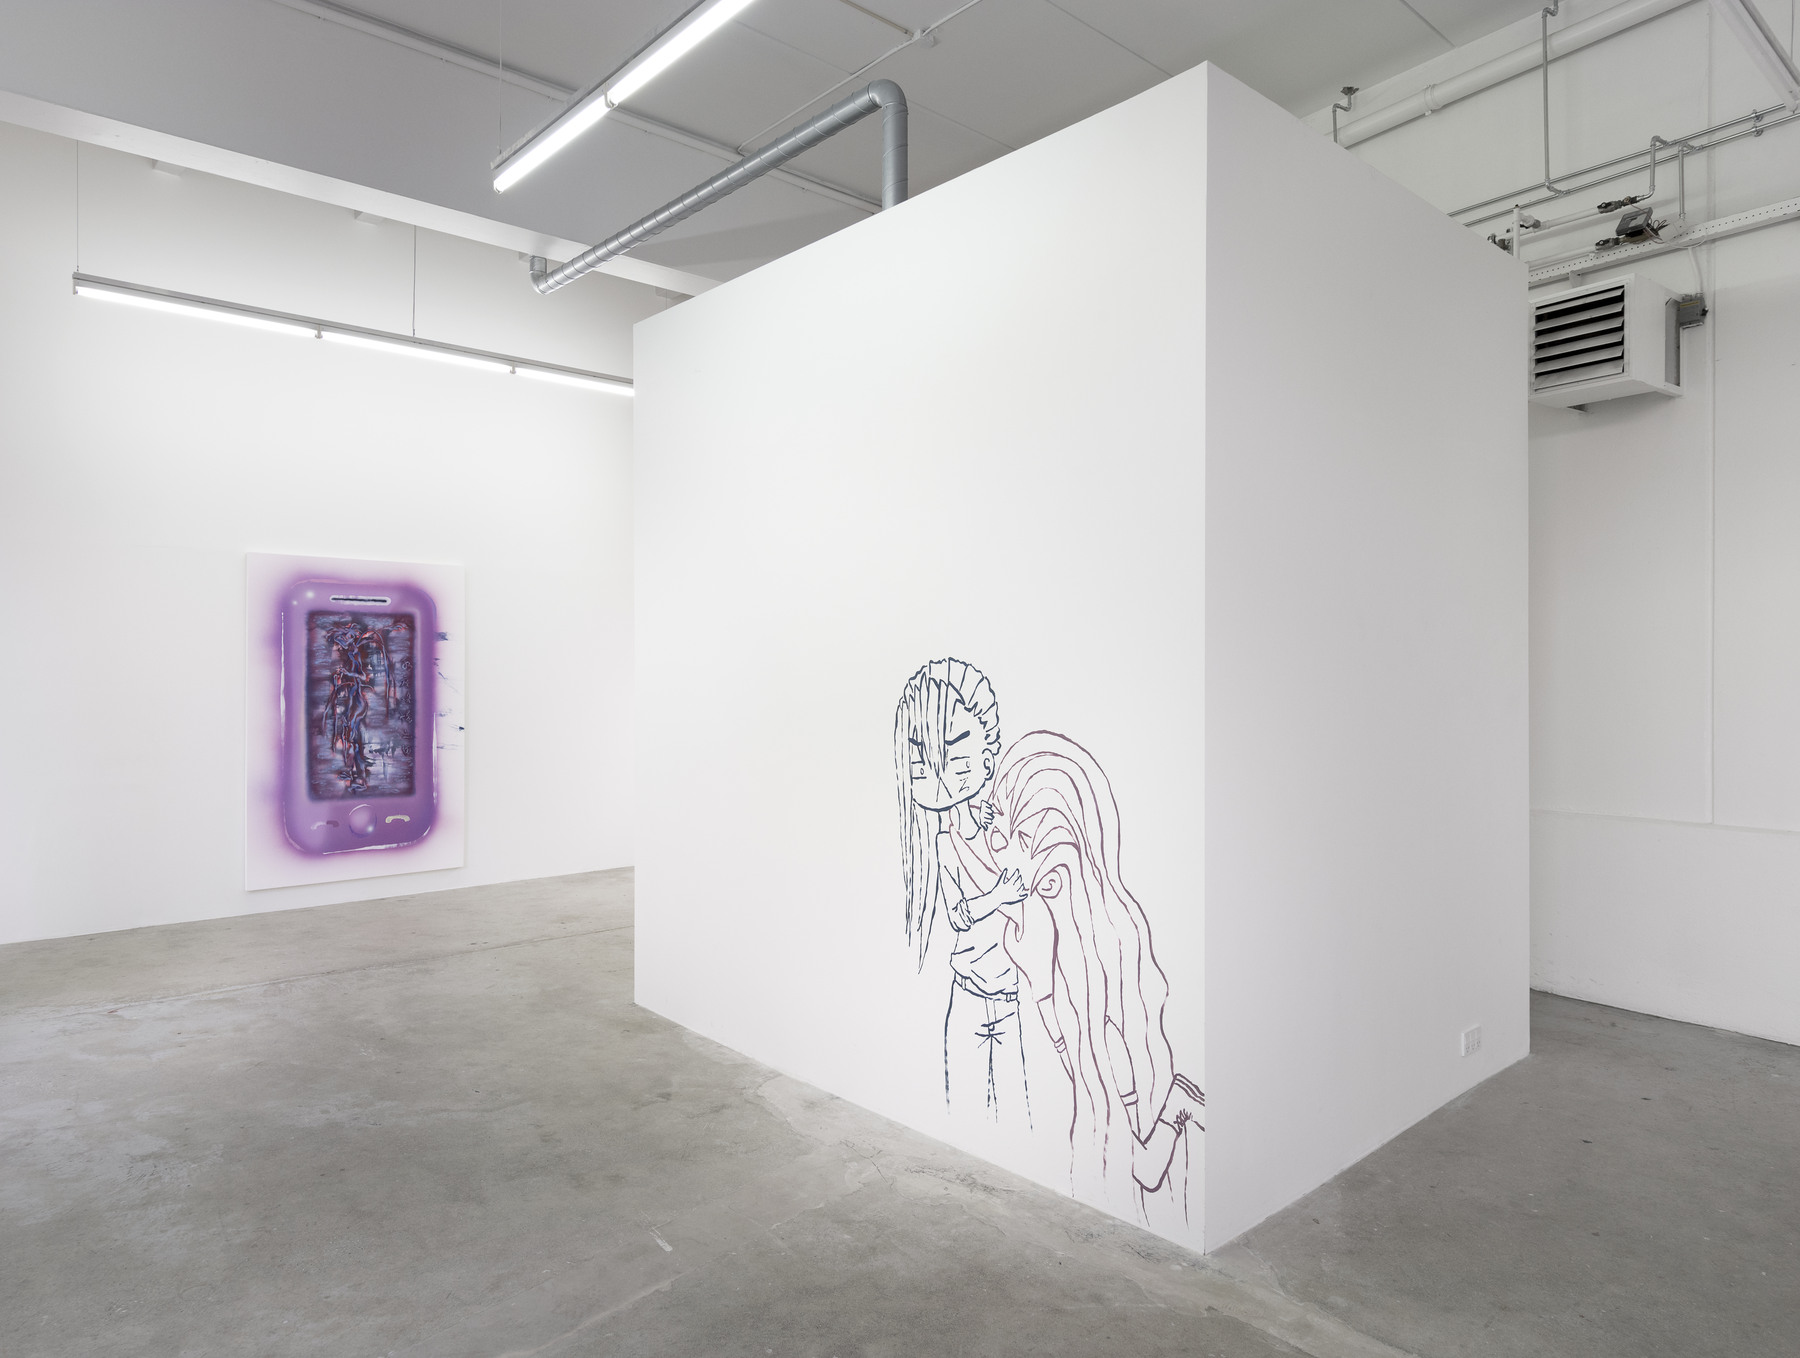 Steven_Installation_view_2017_01